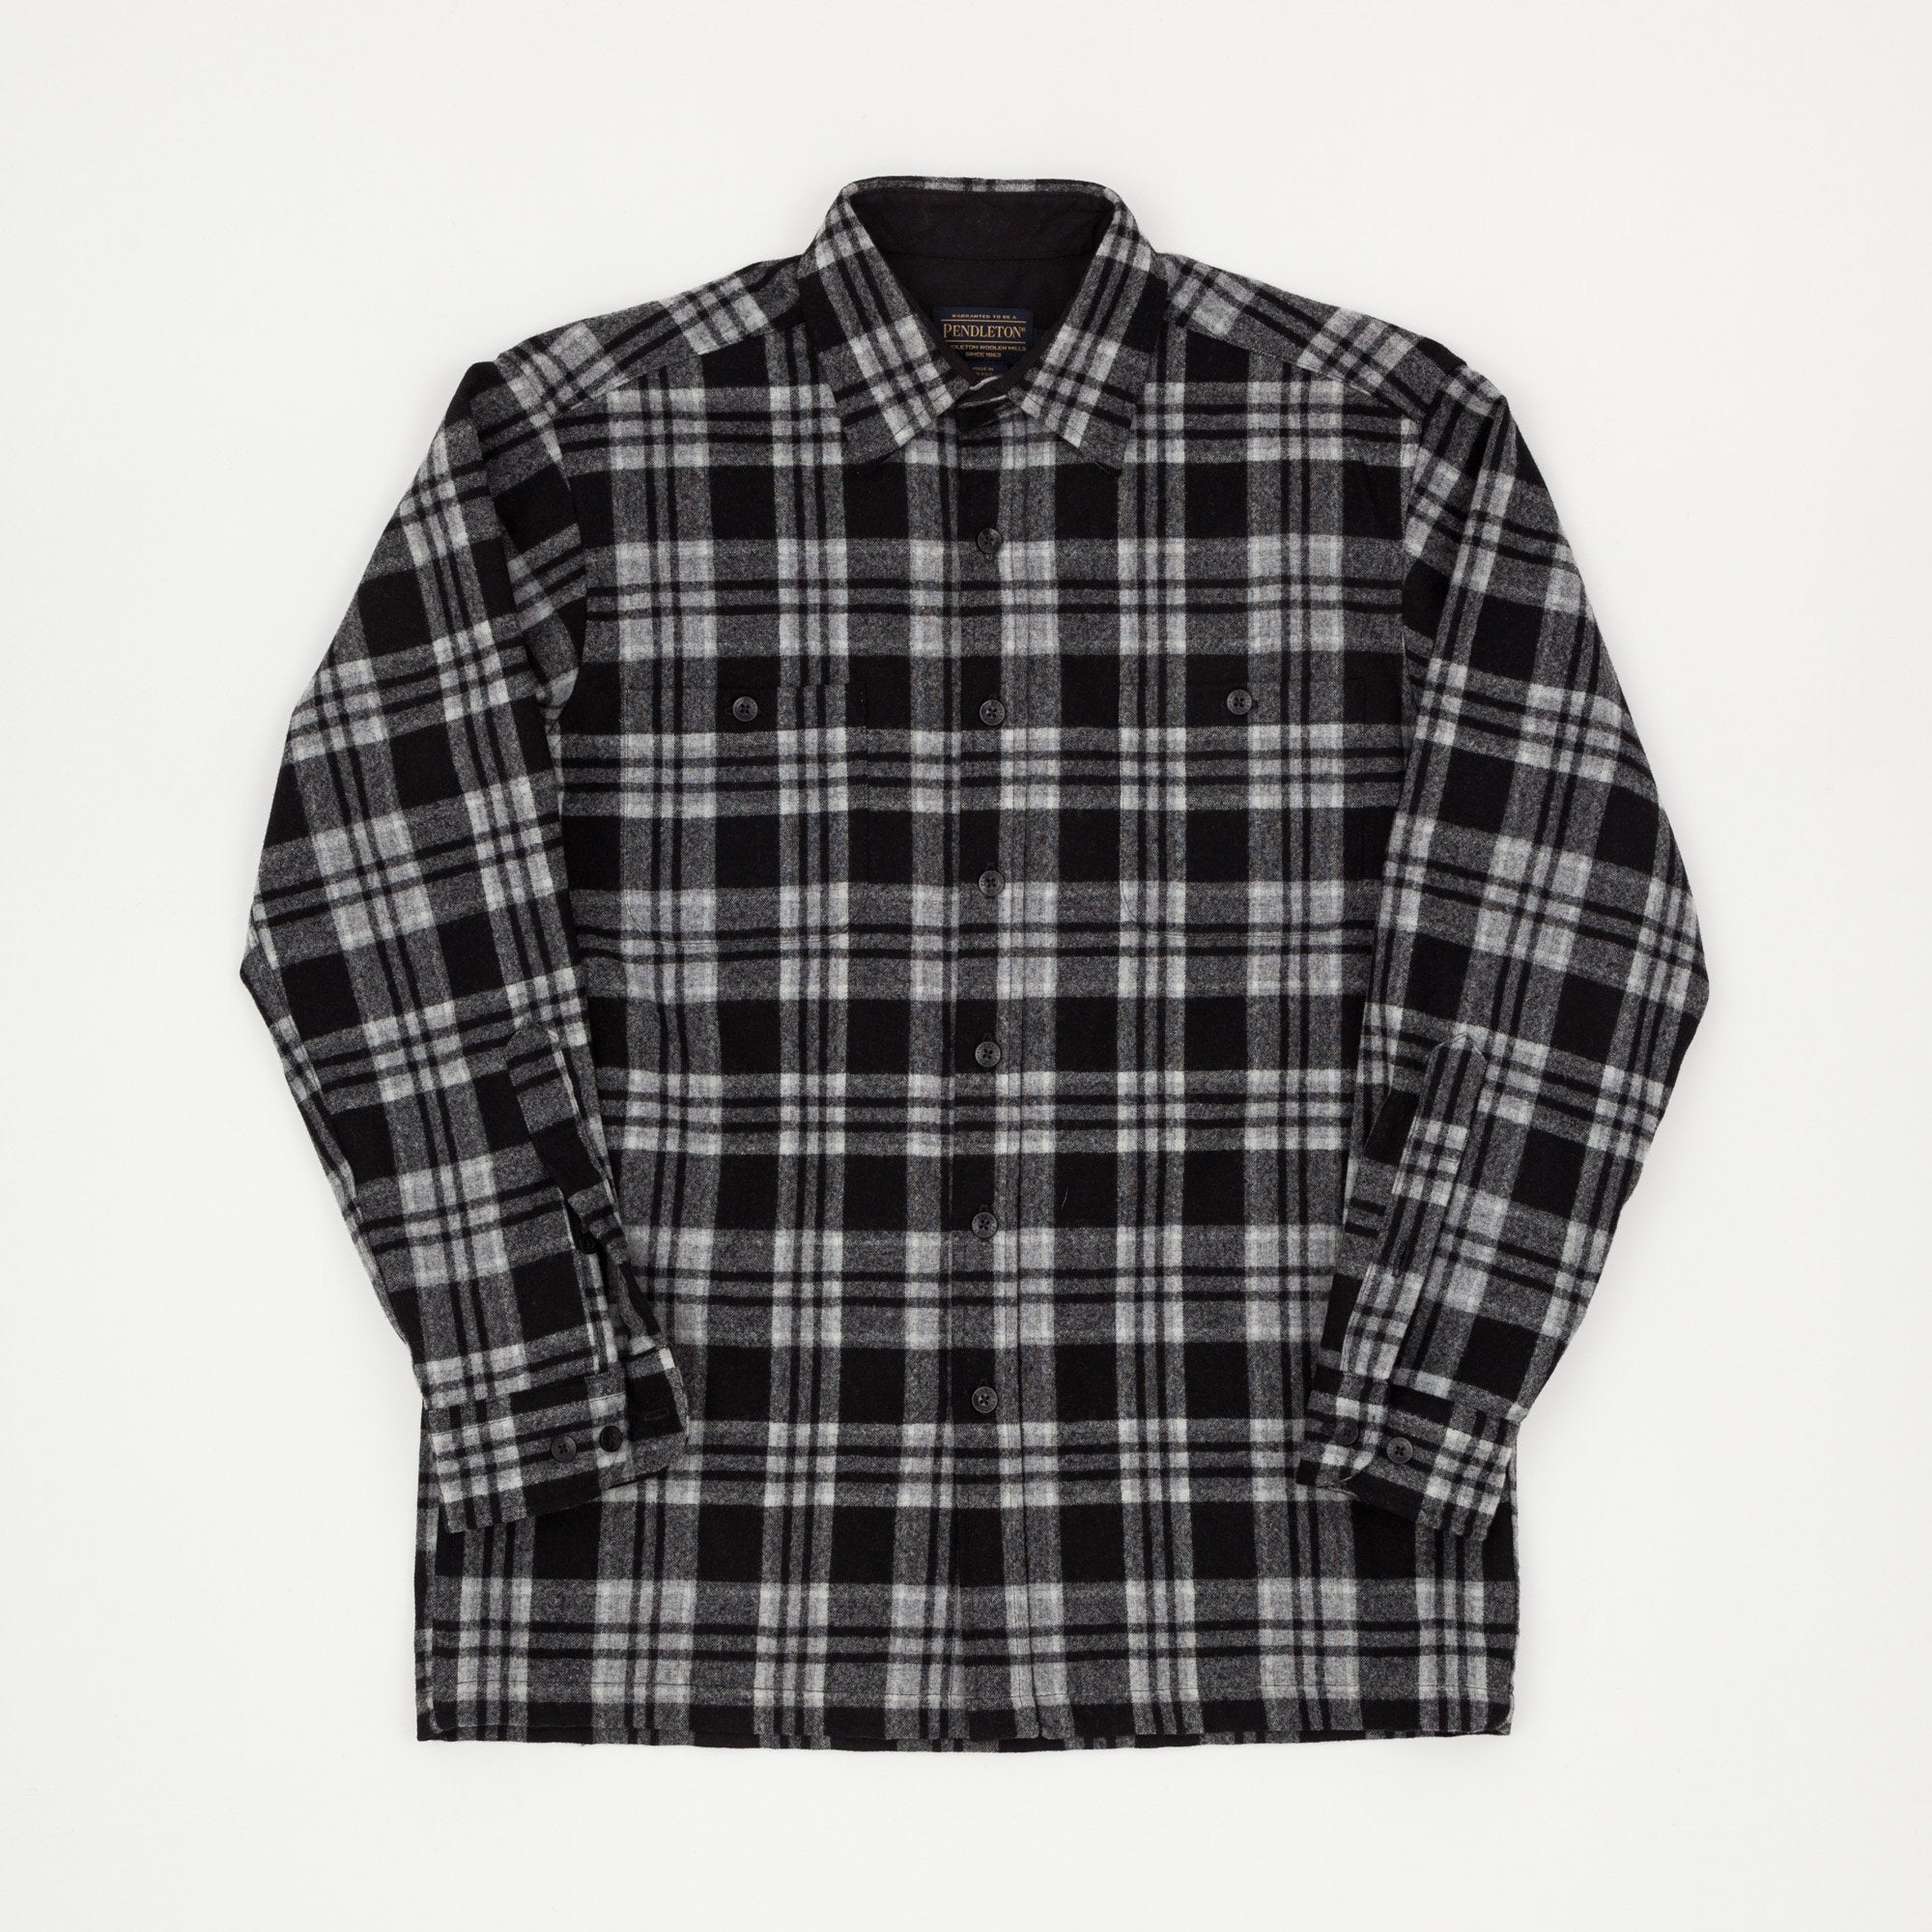 Pendleton Wool Work Shirt